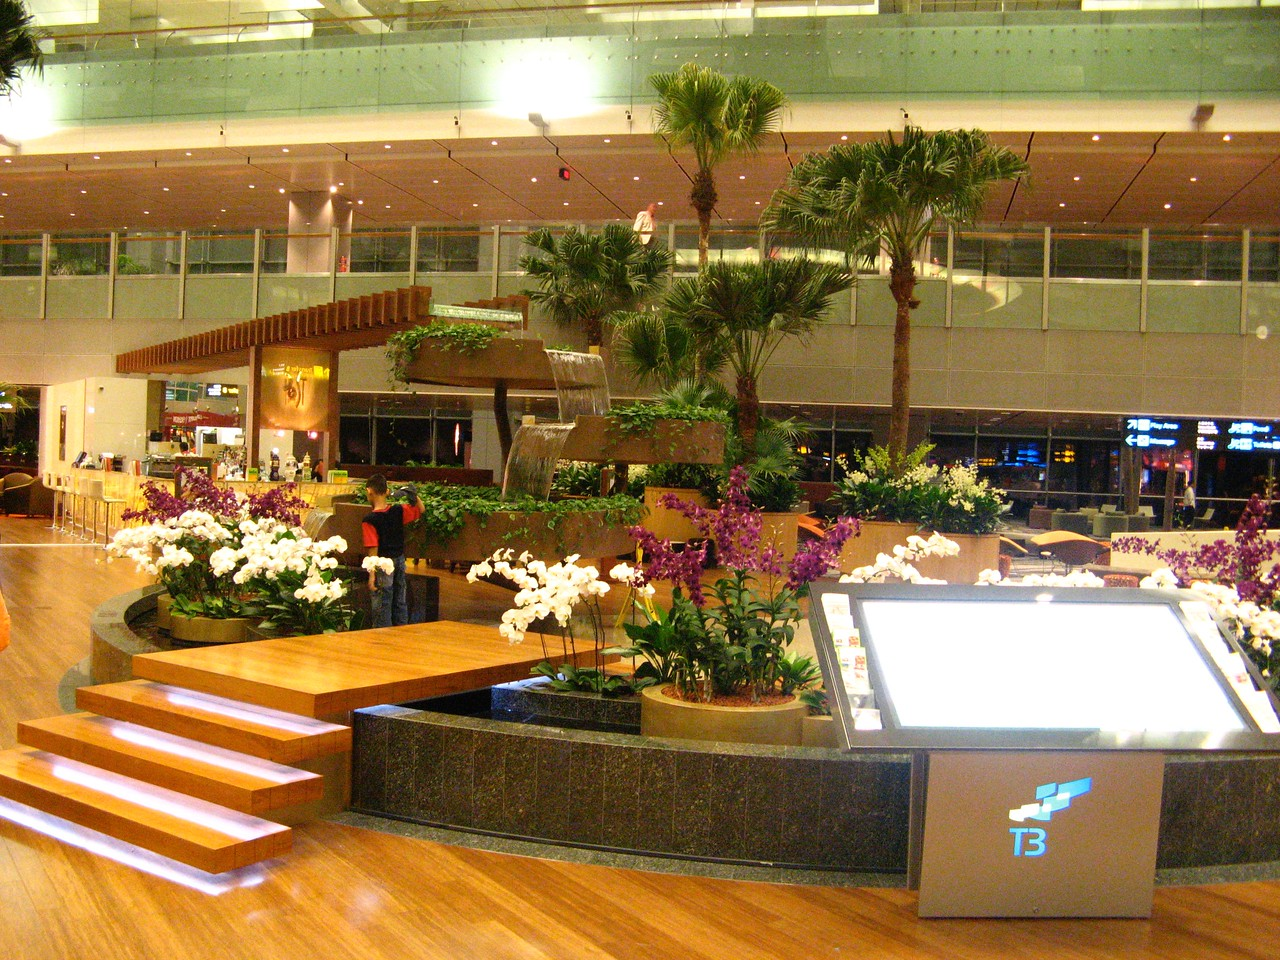 The airport includes 3 hotels, a swimming pool, many different shopping areas, along with many unique restaurants.